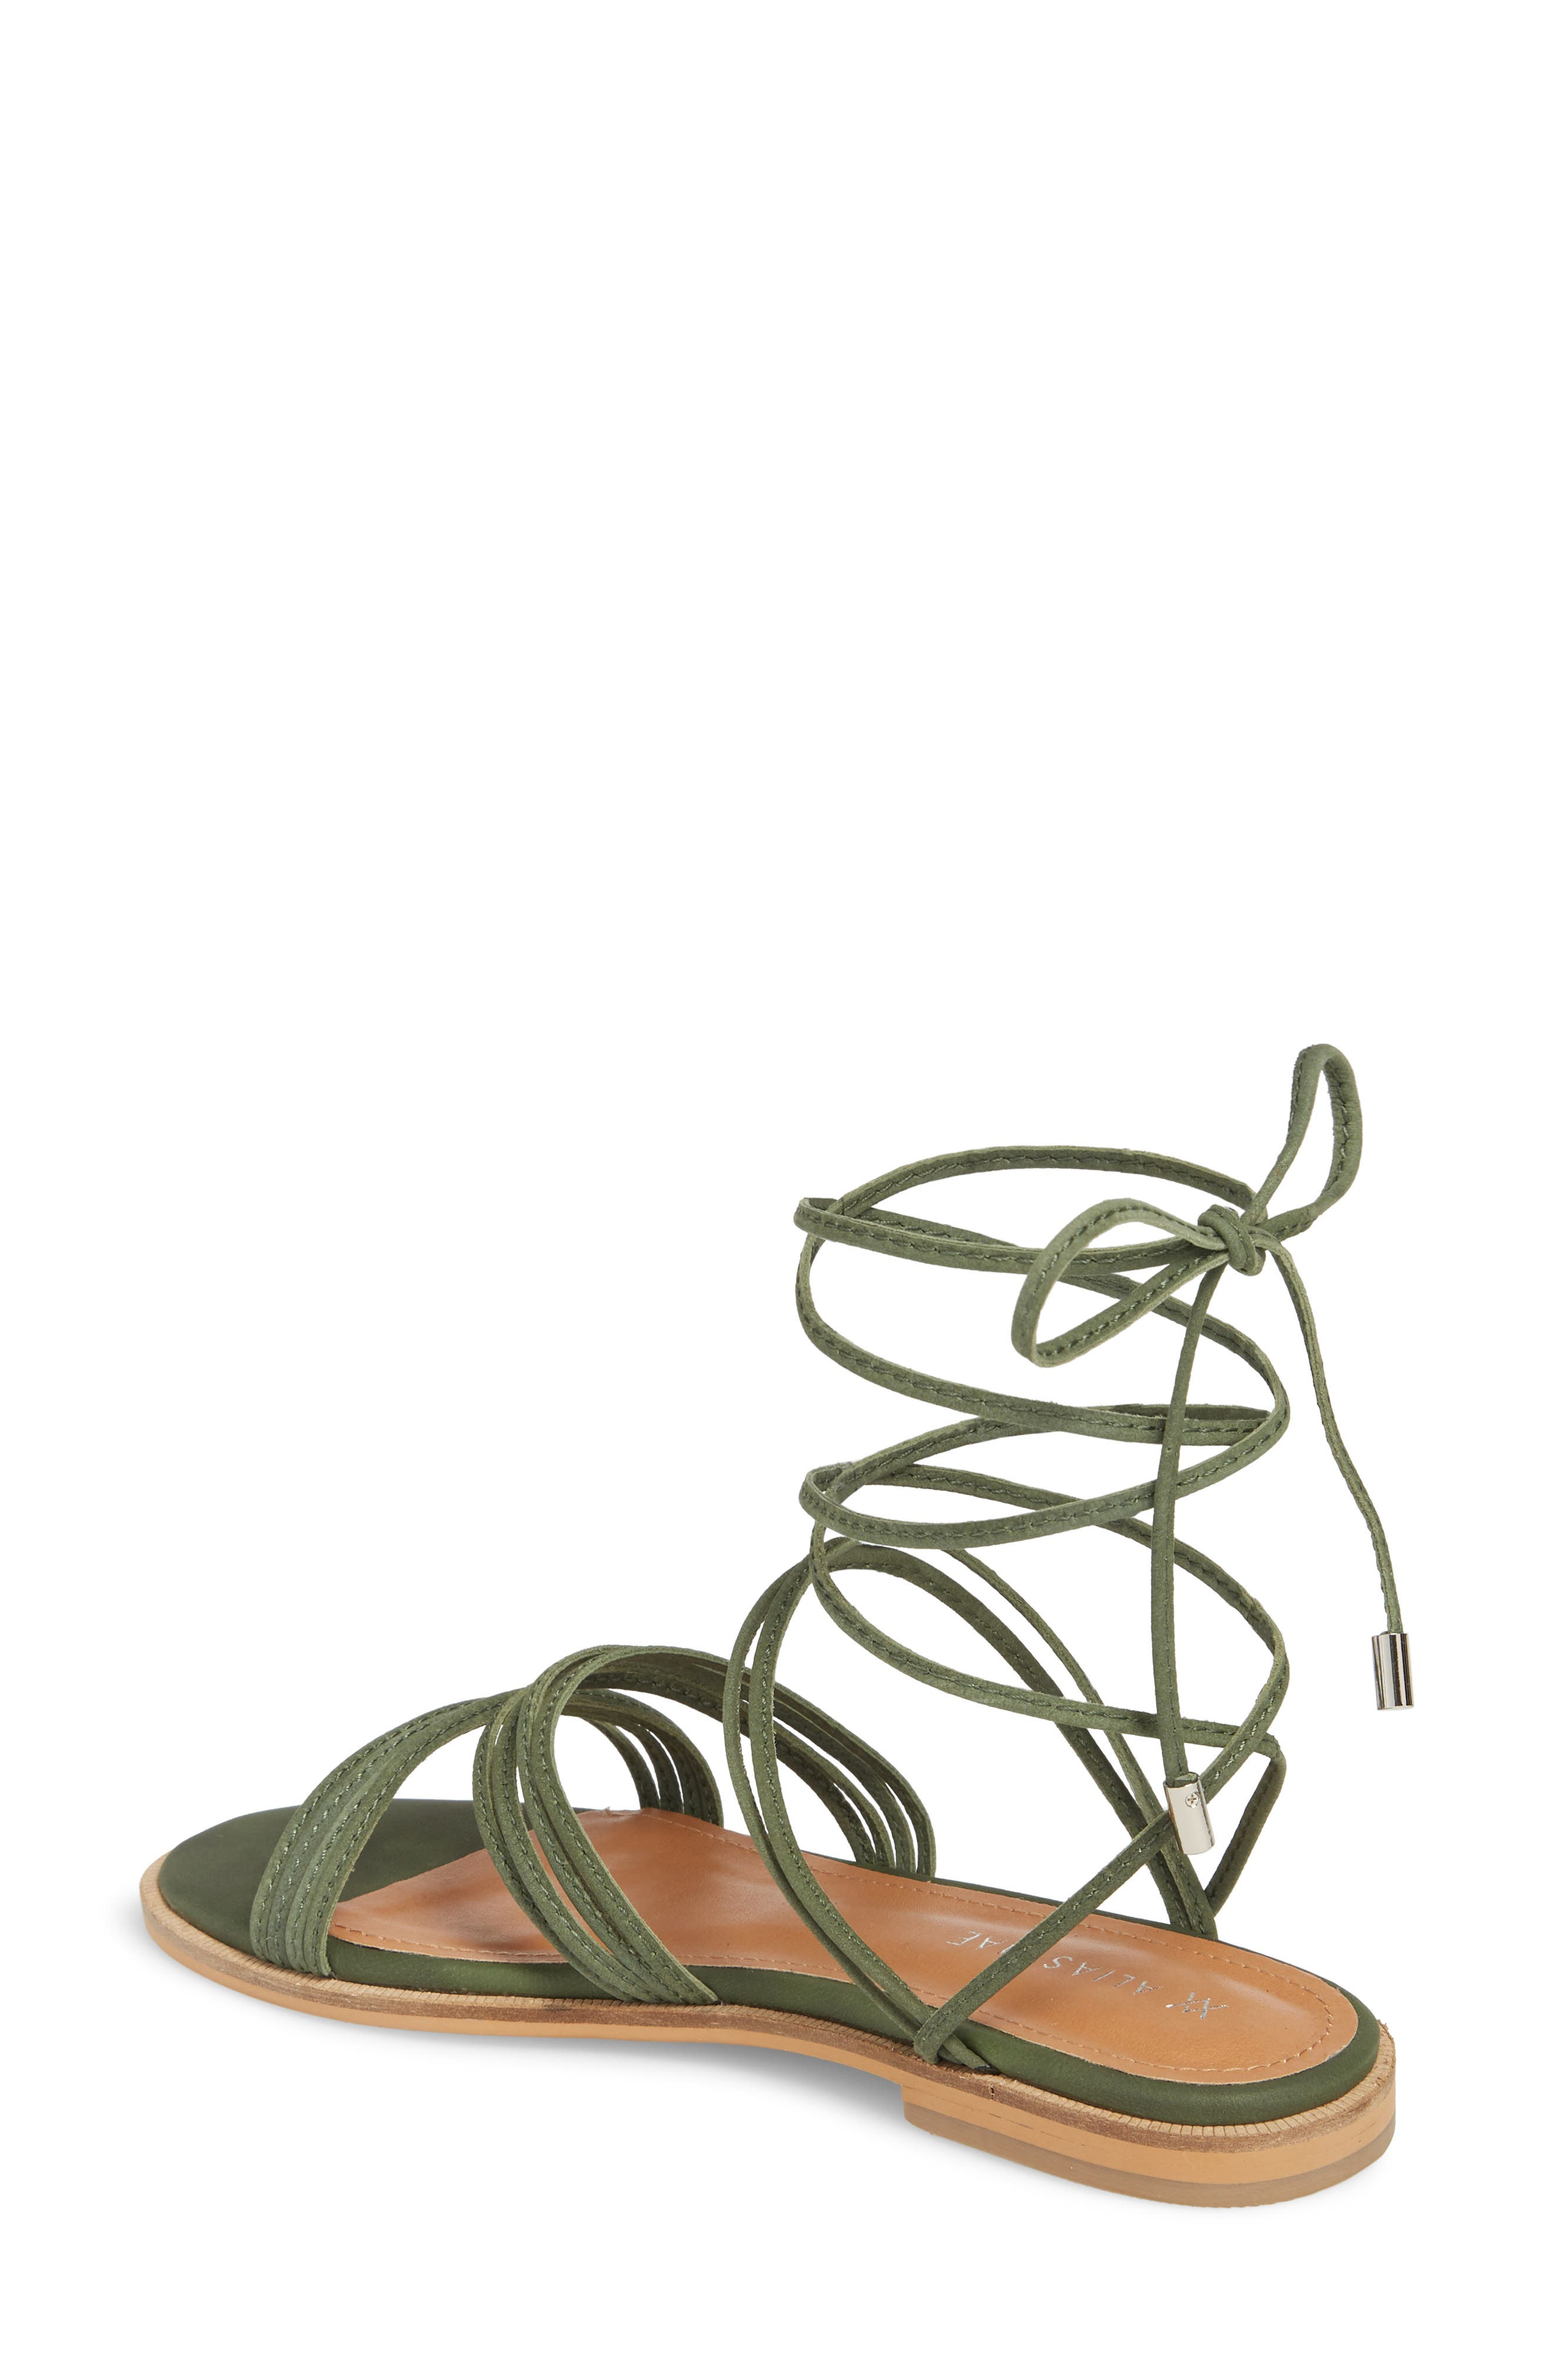 Theory Strappy Flat Sandal,                             Alternate thumbnail 6, color,